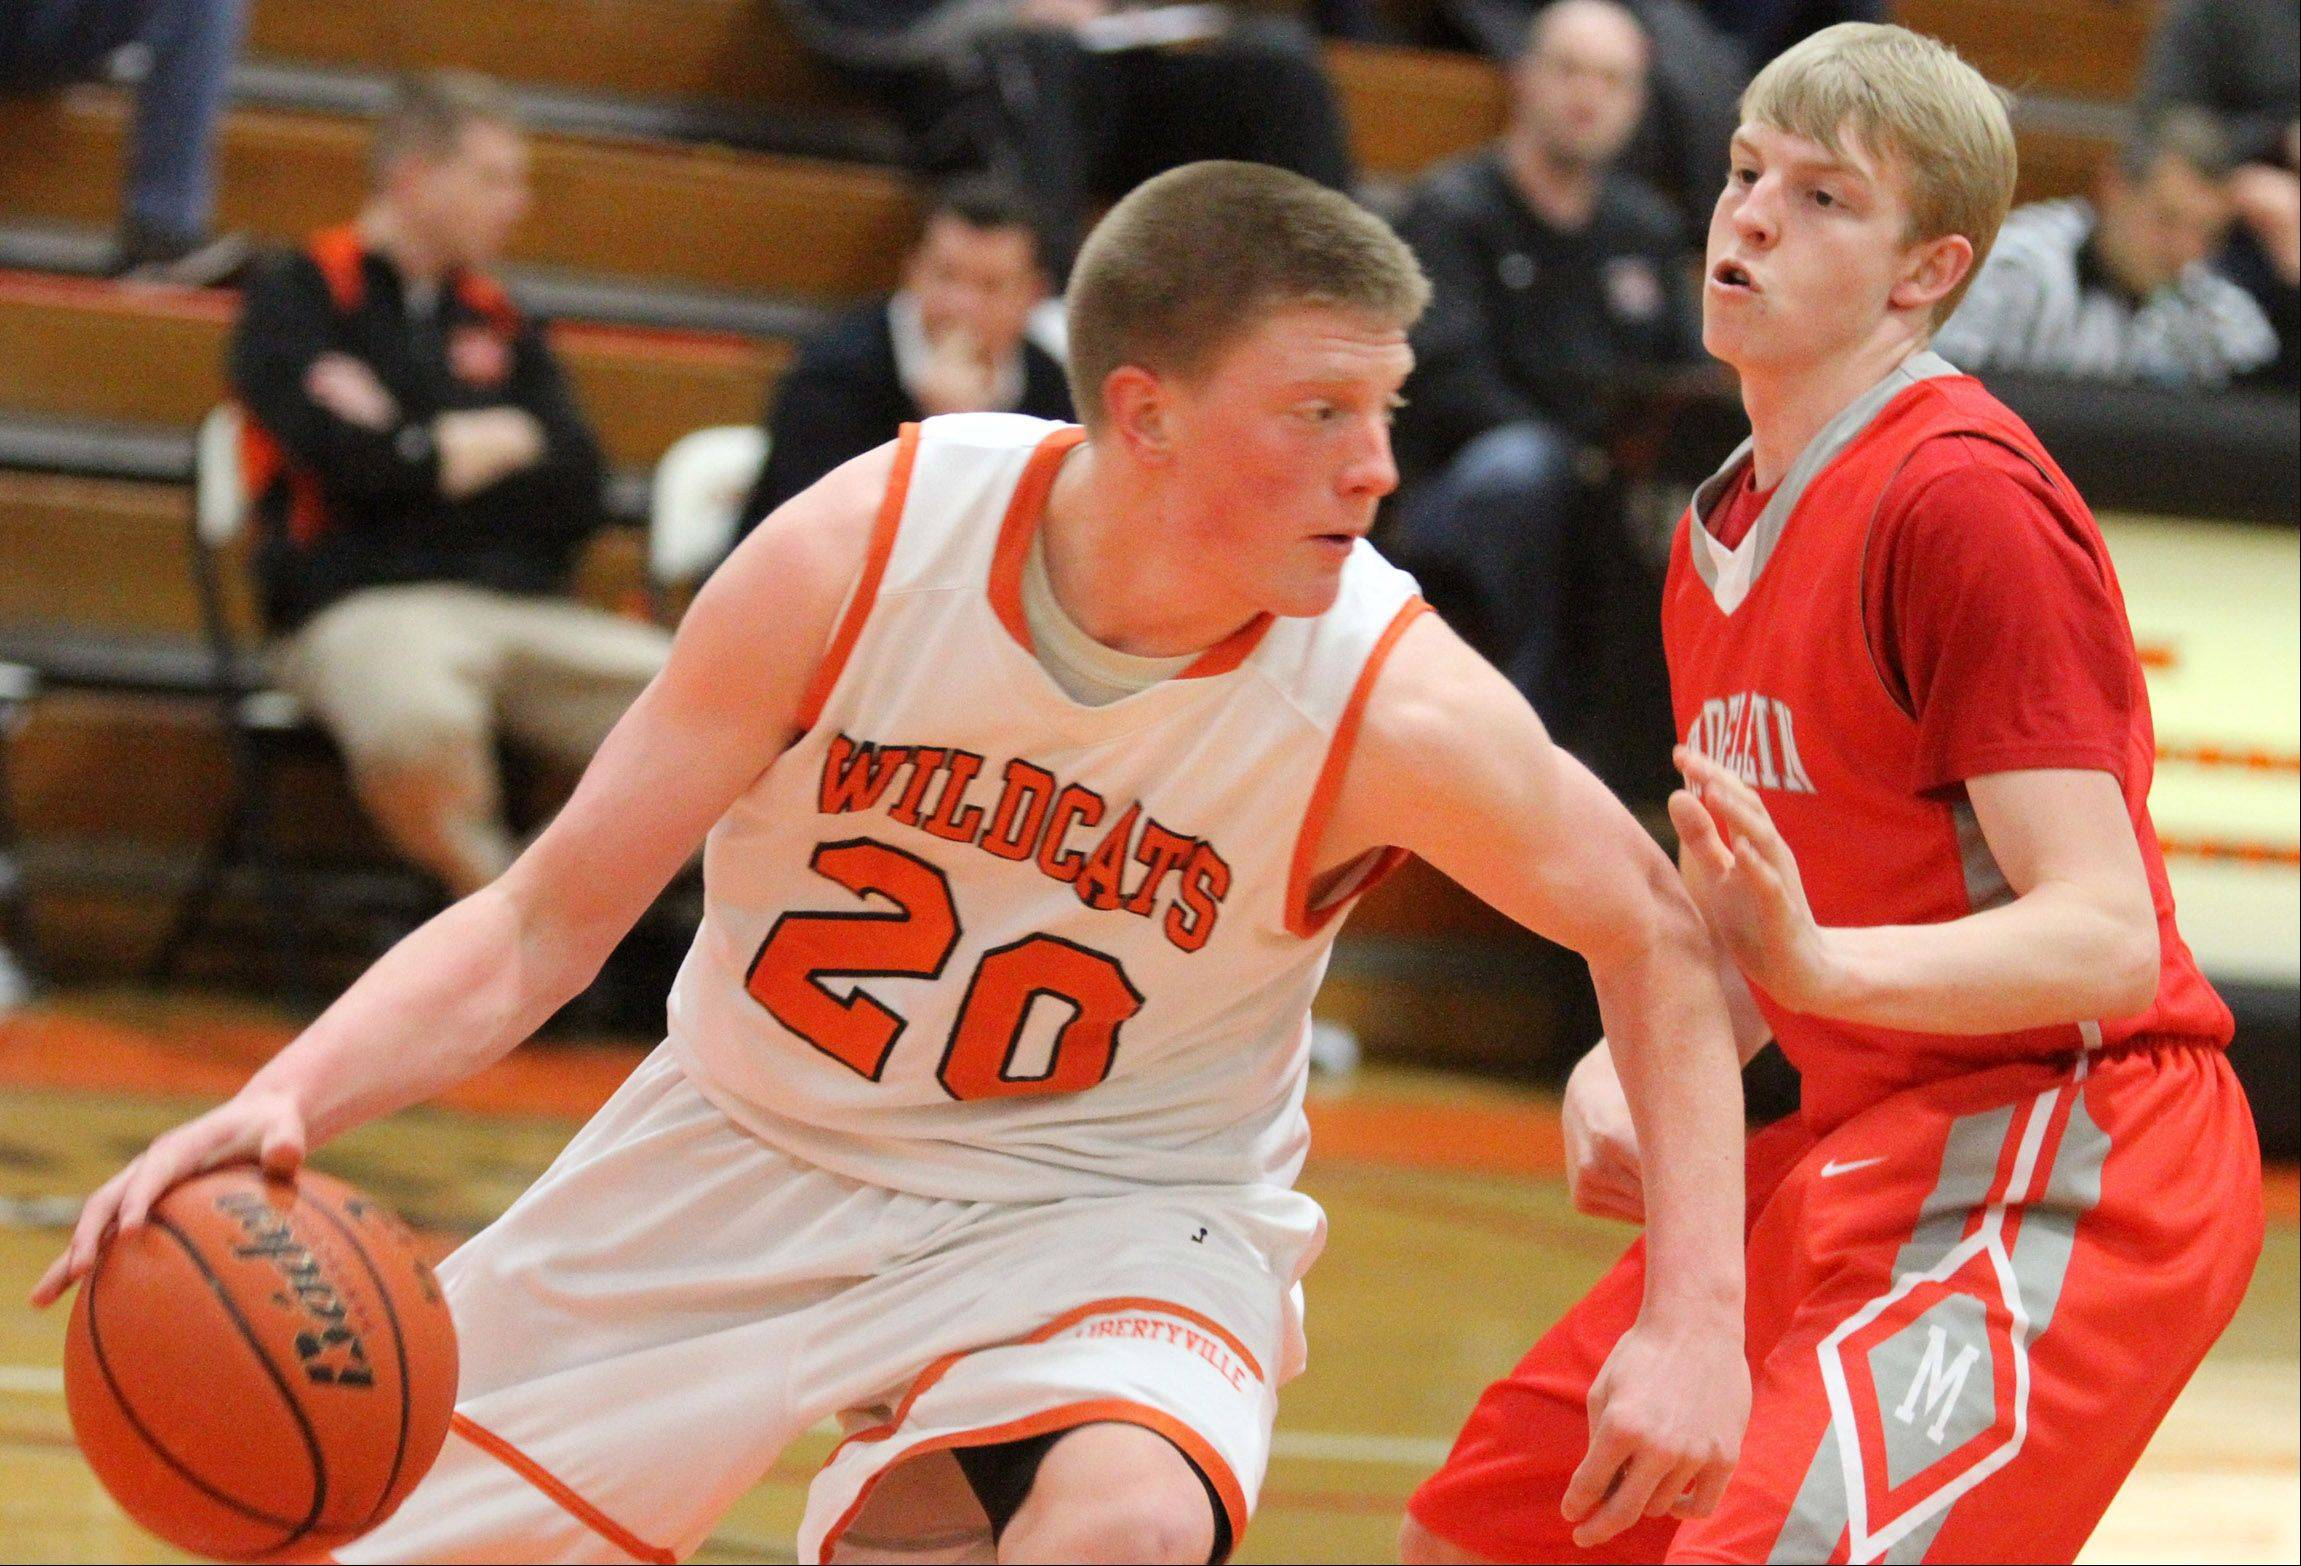 Libertyville guard Jack Lipp looks for running room after grabbing a defensive rebound.